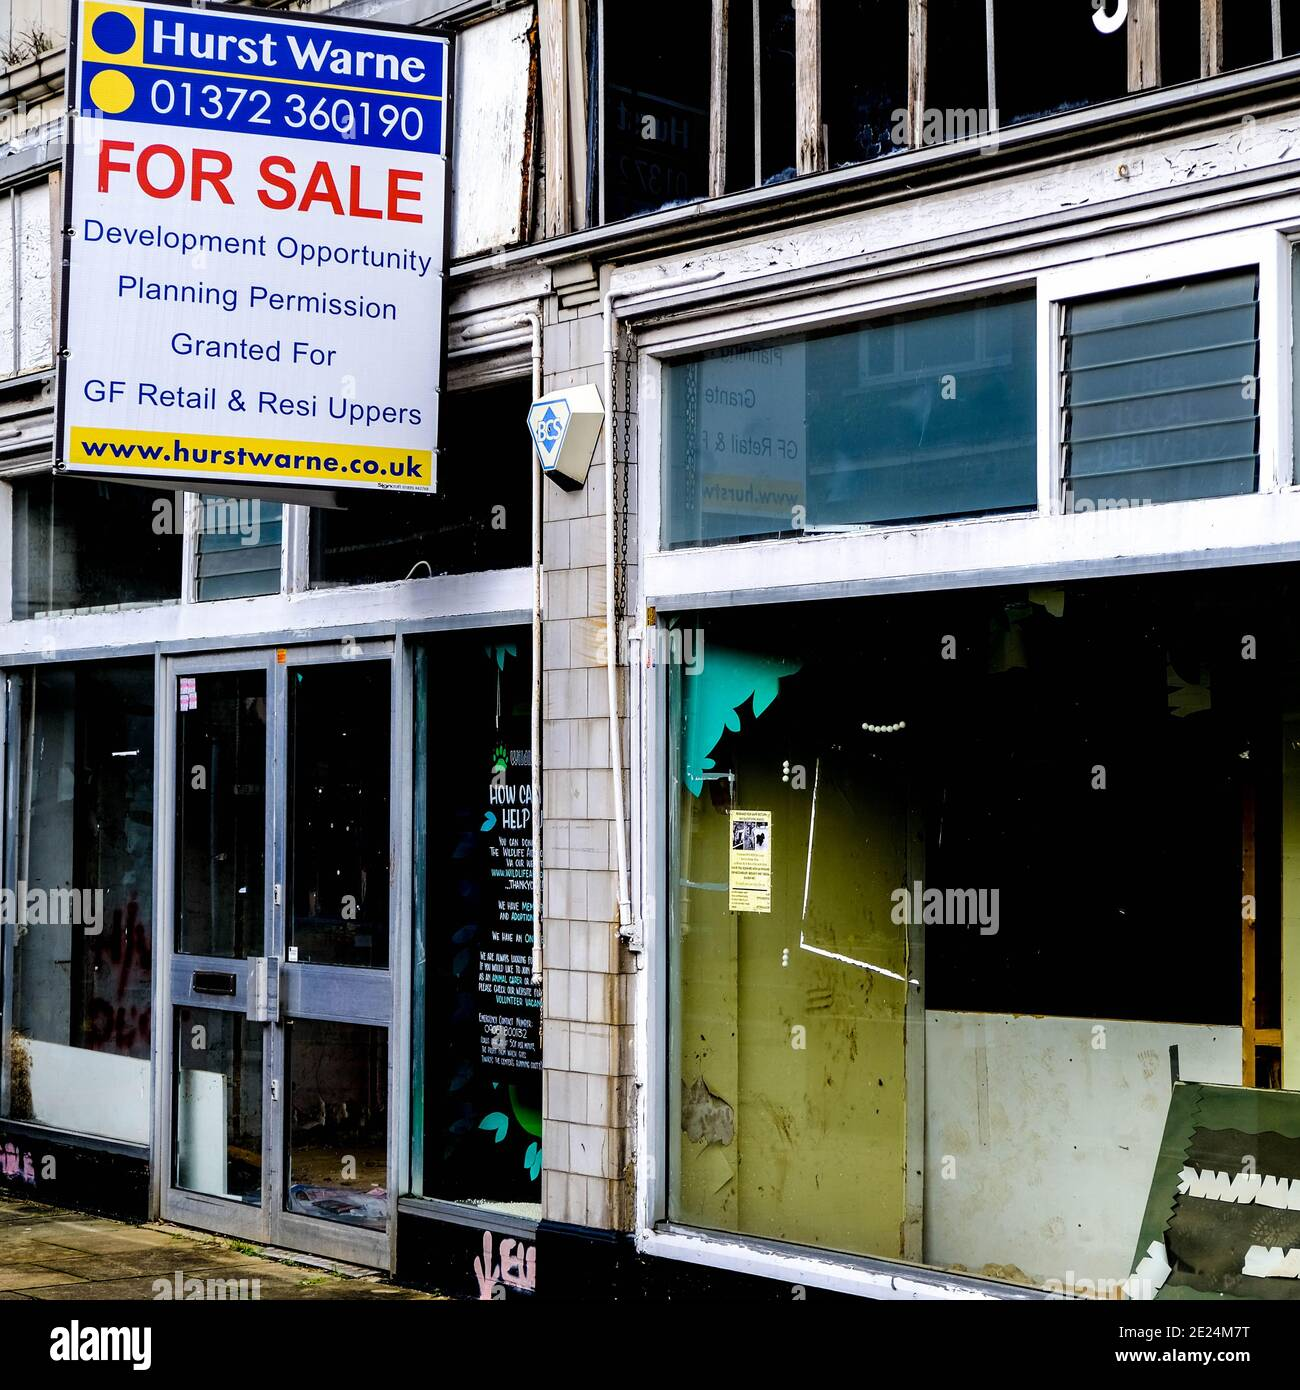 London UK, January 07 2021, Empty Shop Front for Sale Due To Business Failures During Covid-19 Pandemic Lockdown Stock Photo